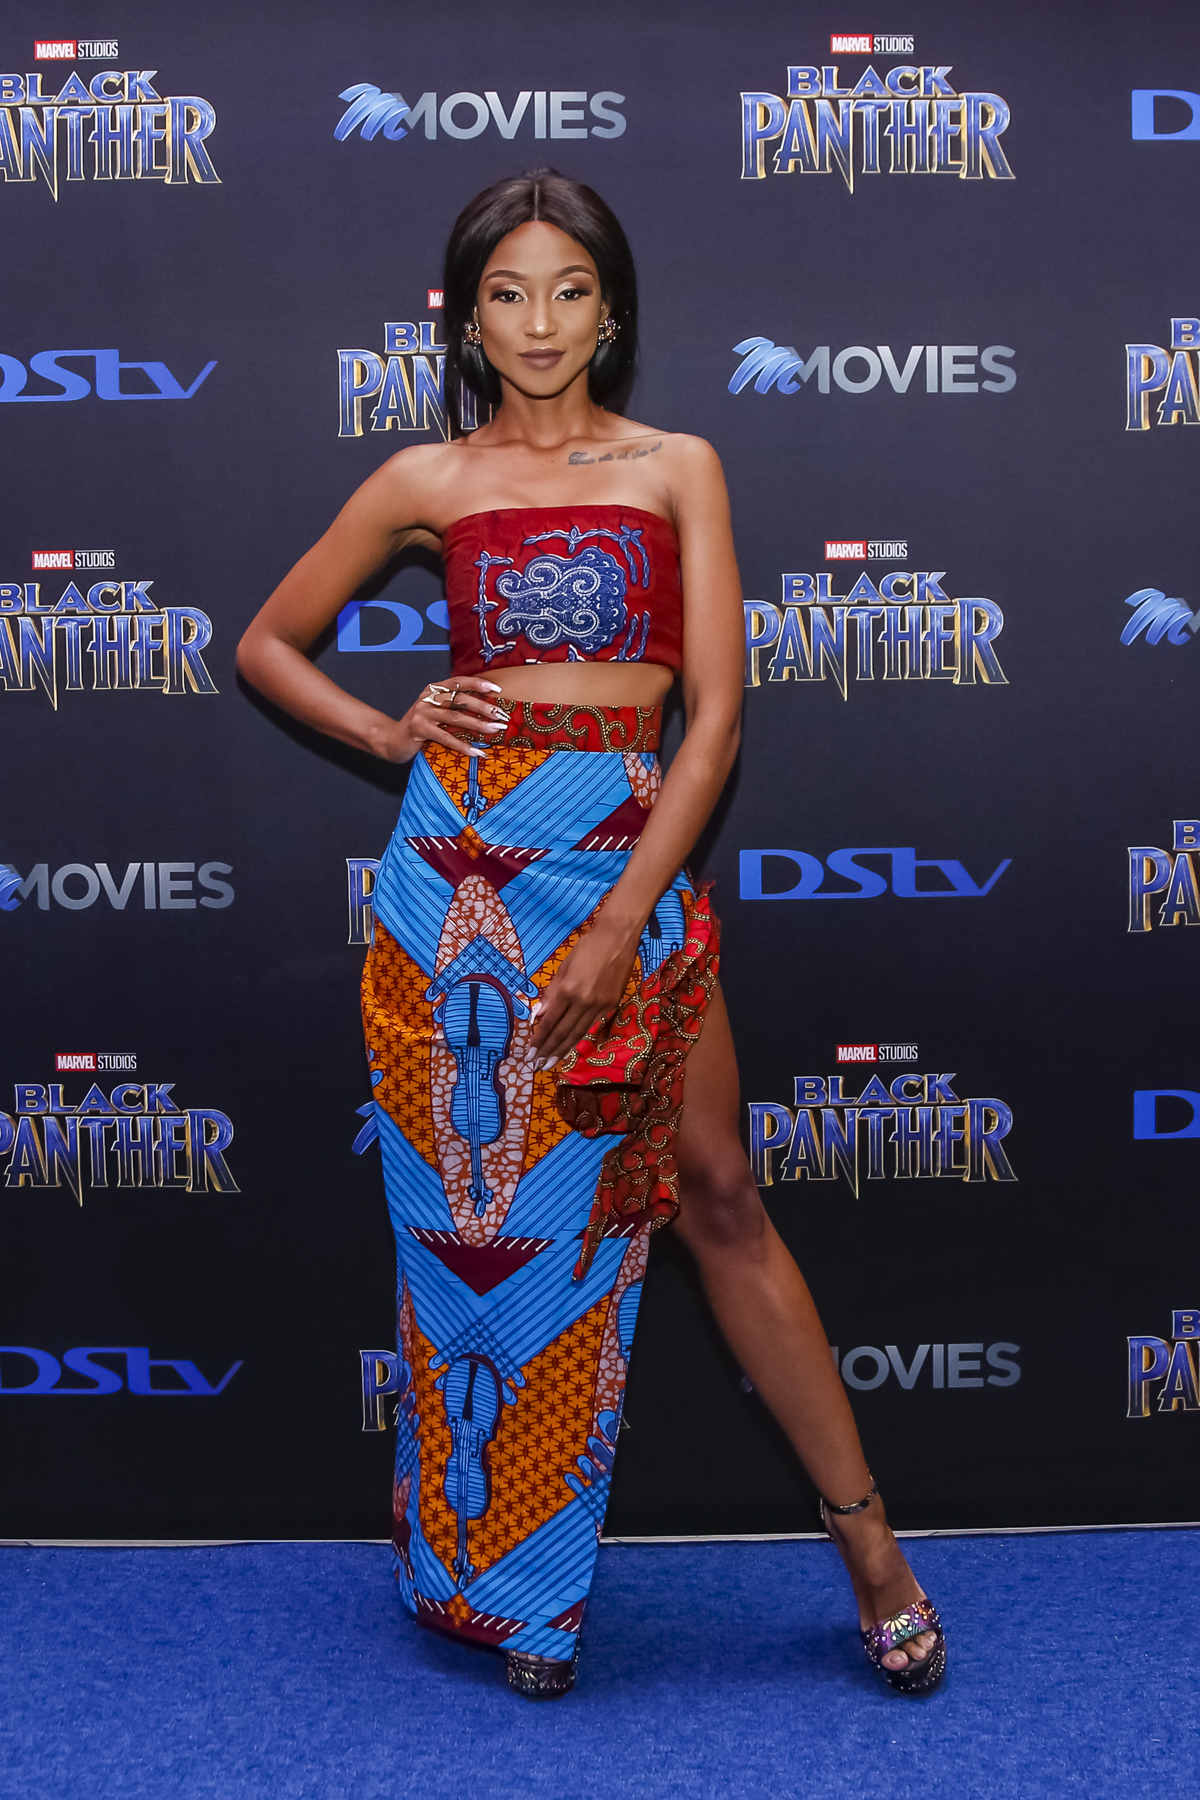 Best At Home Gel Nails Kit: Top 5 Best Dressed Female Celebs At The Black Panther SA